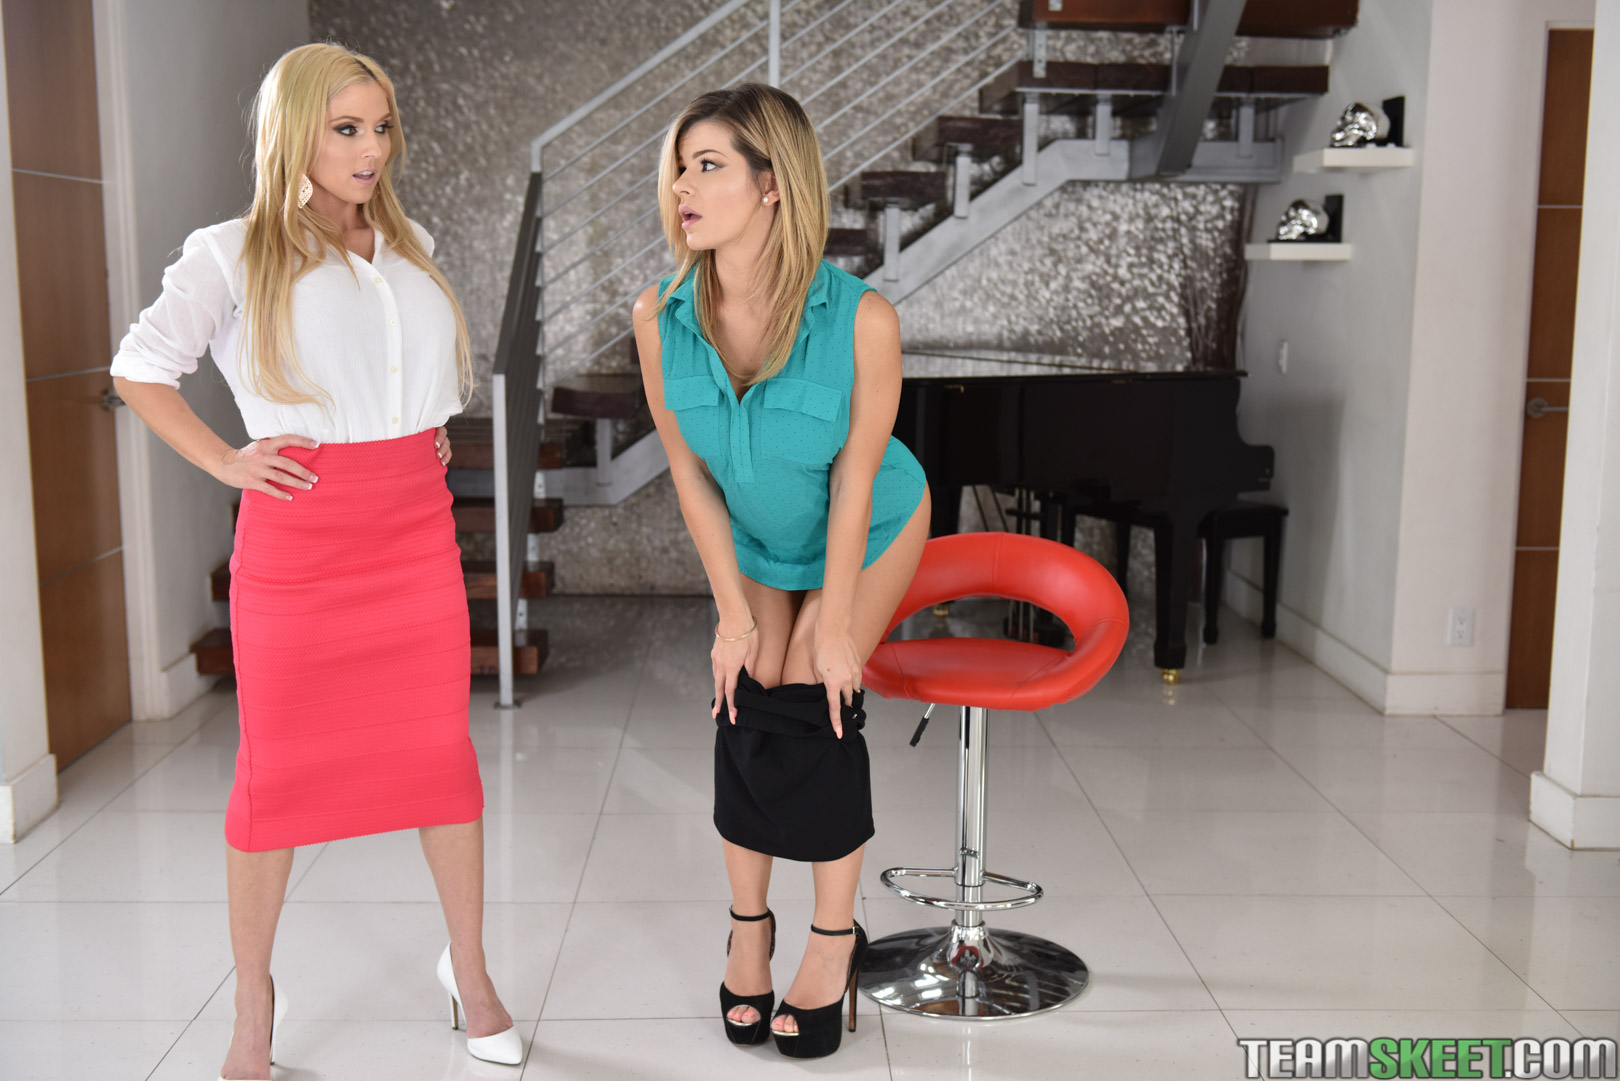 Astonishing busty wives Christie Stevens and Mary Jean sharing a cock № 686220  скачать